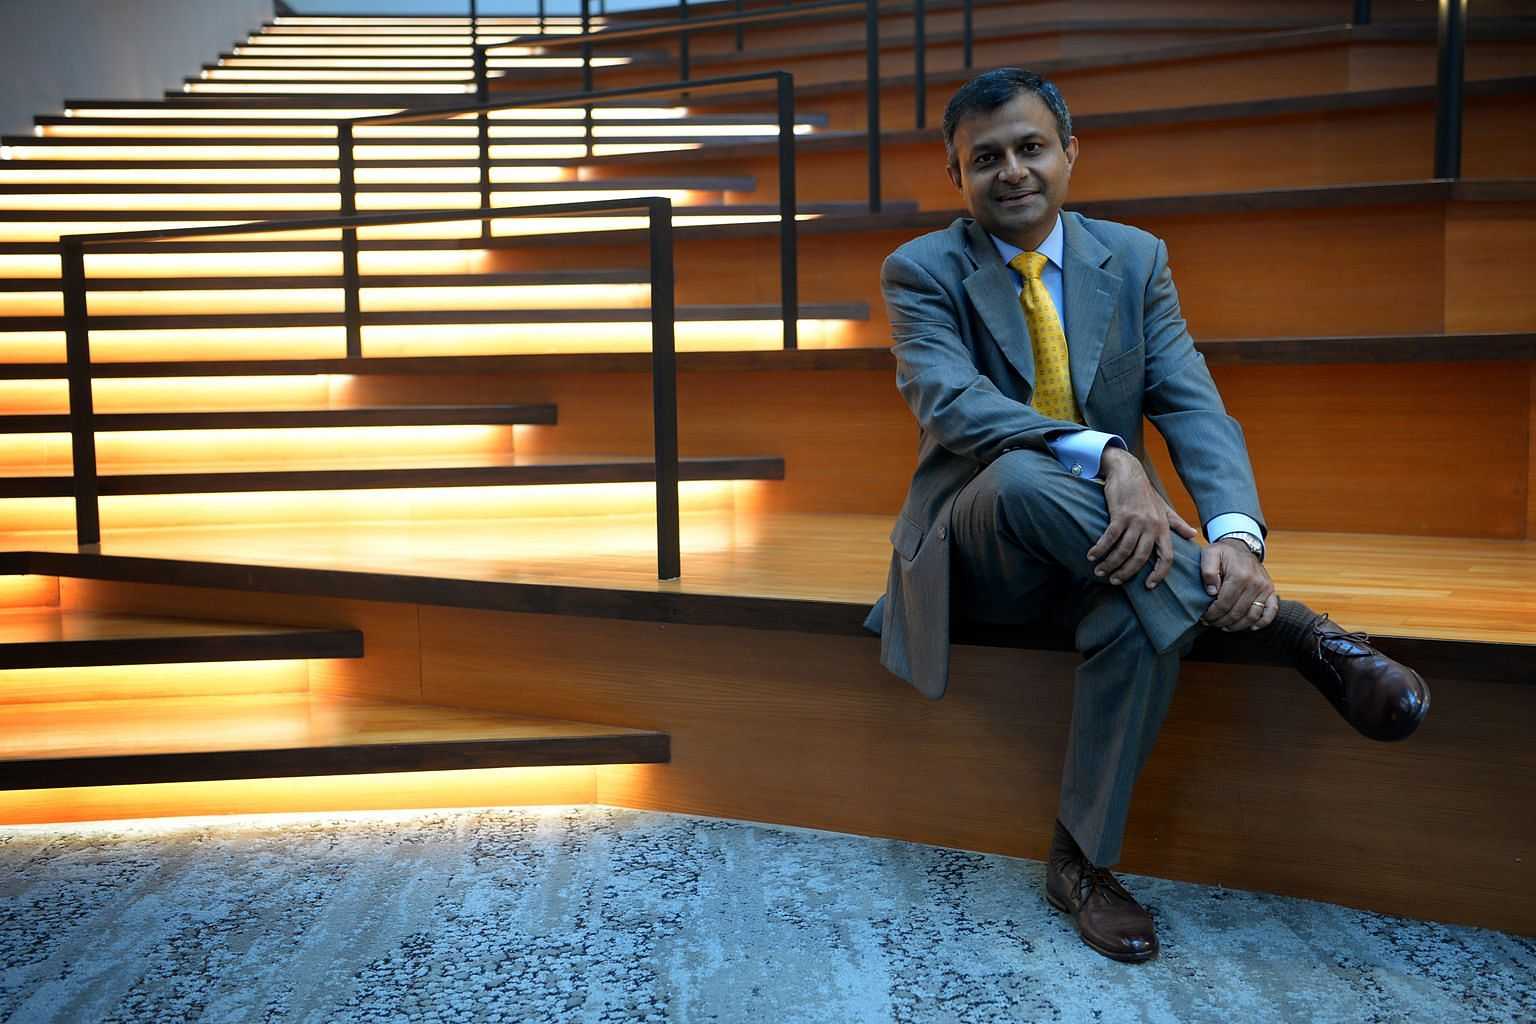 Mr Srikanth Nott, general manager for personal health at Philips Asean Pacific, is a 15-year veteran at Philips who was formerly a consultant at PwC. He has taken different roles in Philips, managing the lighting and healthcare business for the last